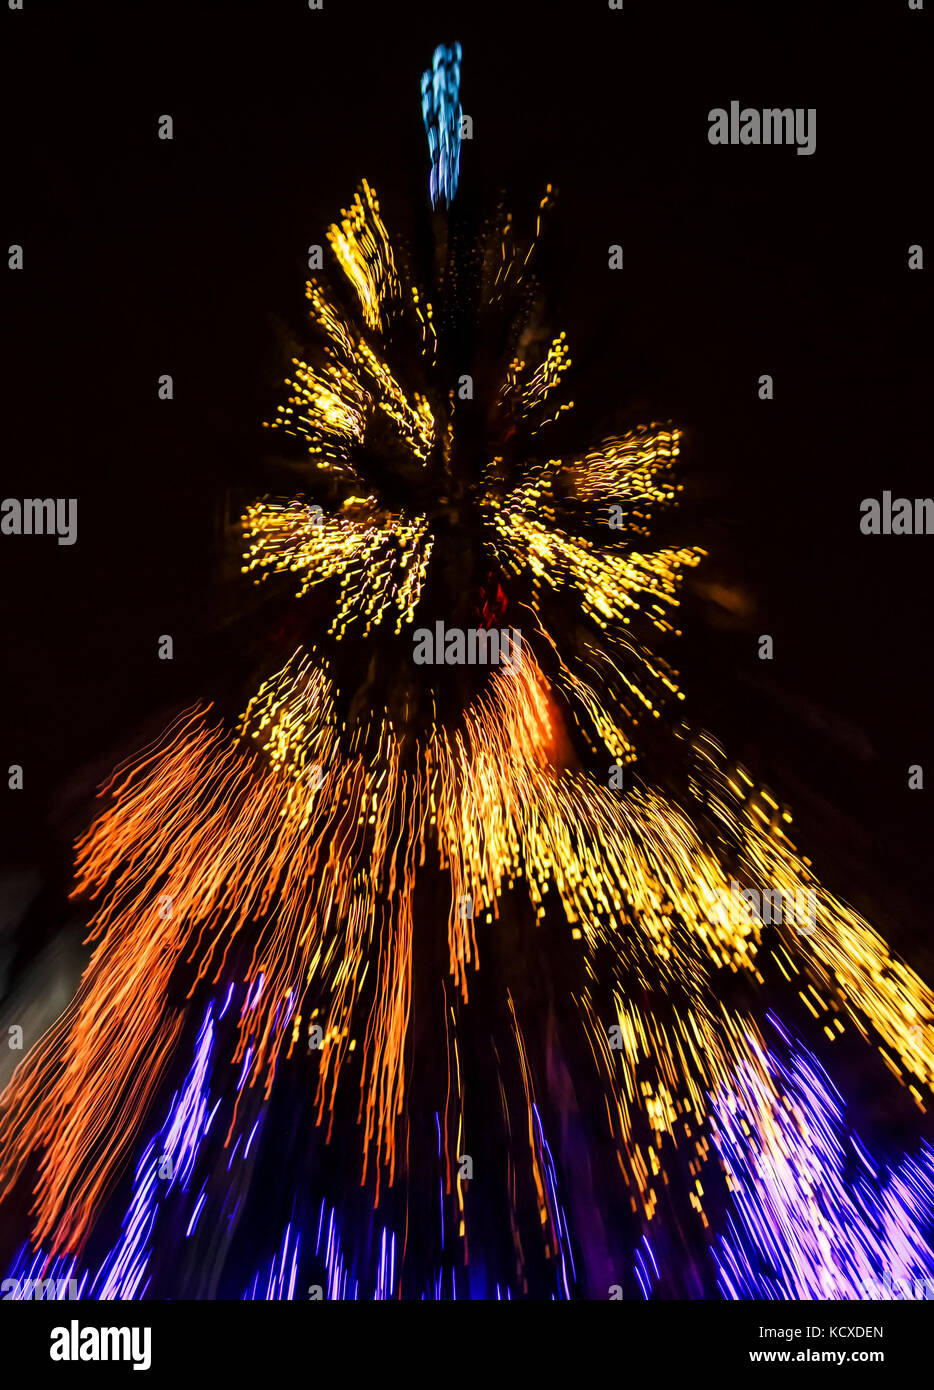 Abstract Christmas lights background at night. Christmas tree blurred with zoom effect - Stock Image